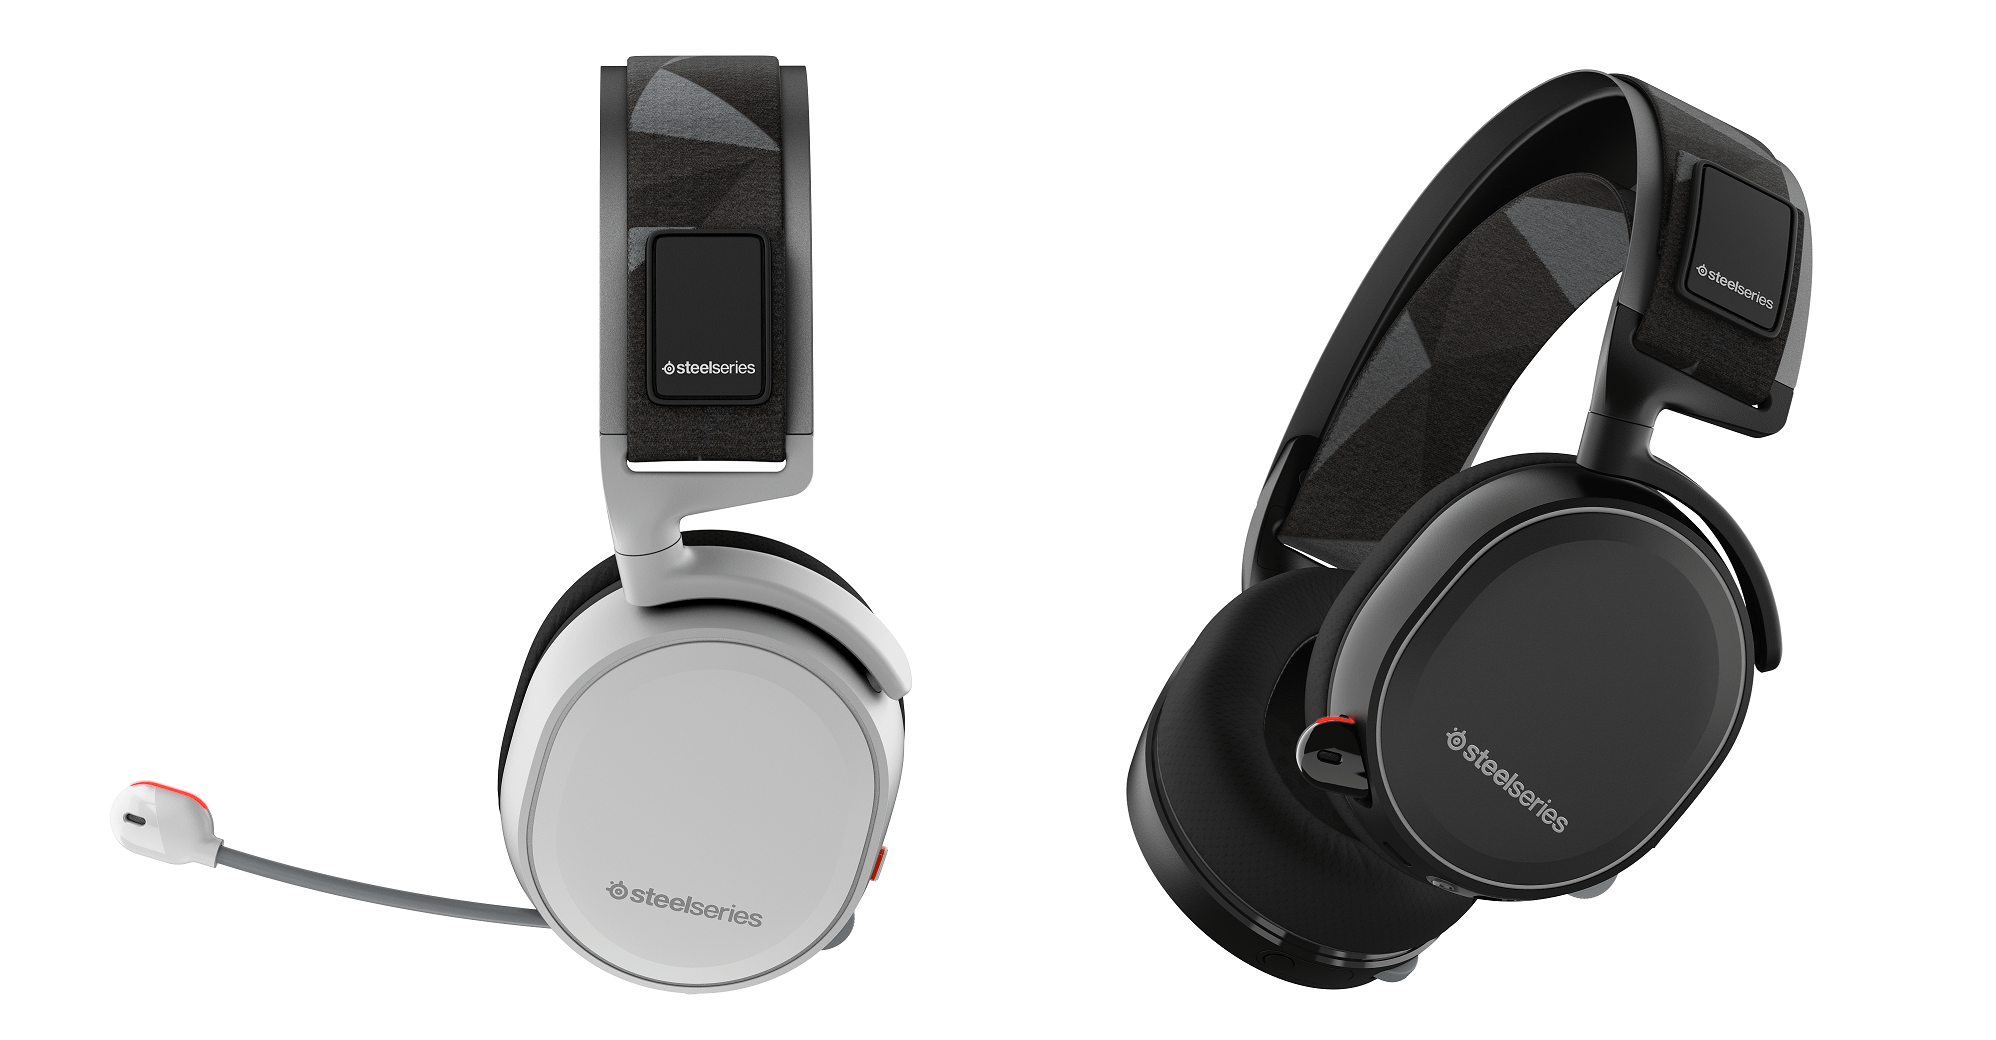 Steelseries Kicks Off The Holiday Season With Massive Black Friday Promotions And Announces The Availability Of Arctis 7 Btnhd